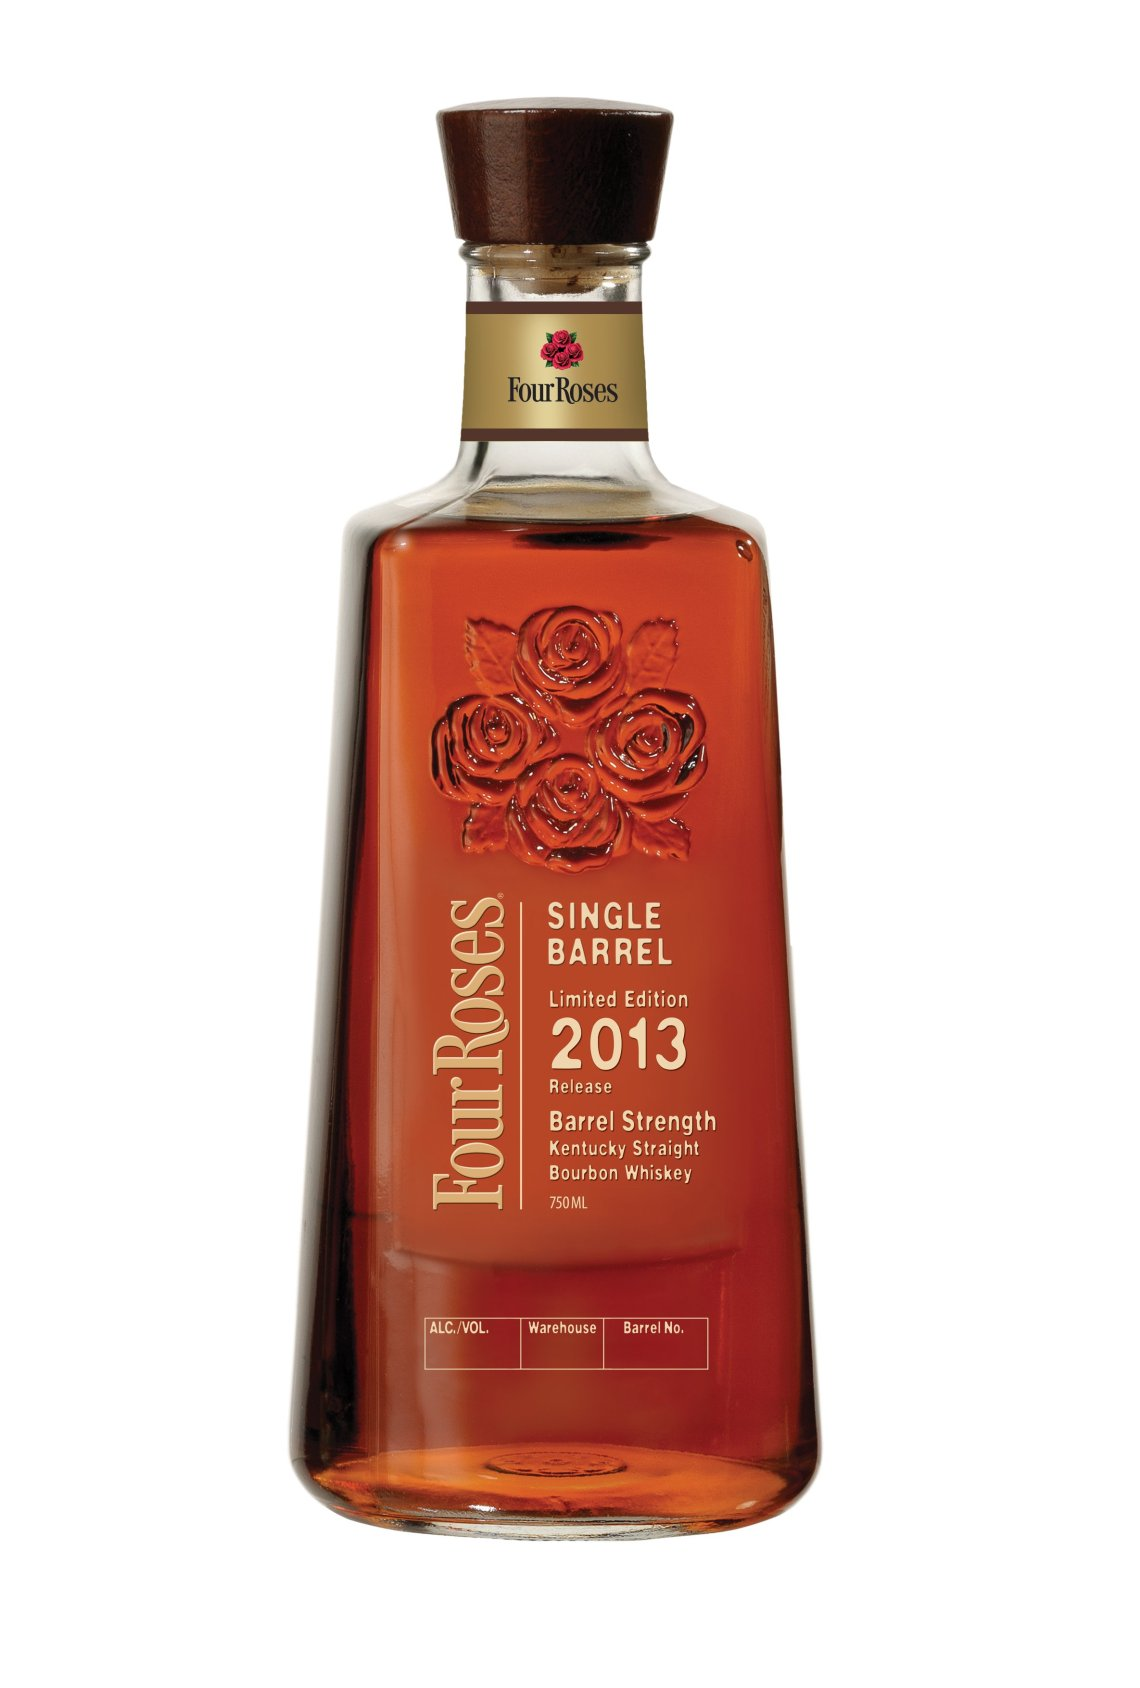 Four Roses 2013 Limited Edition Single Barrel Bourbon